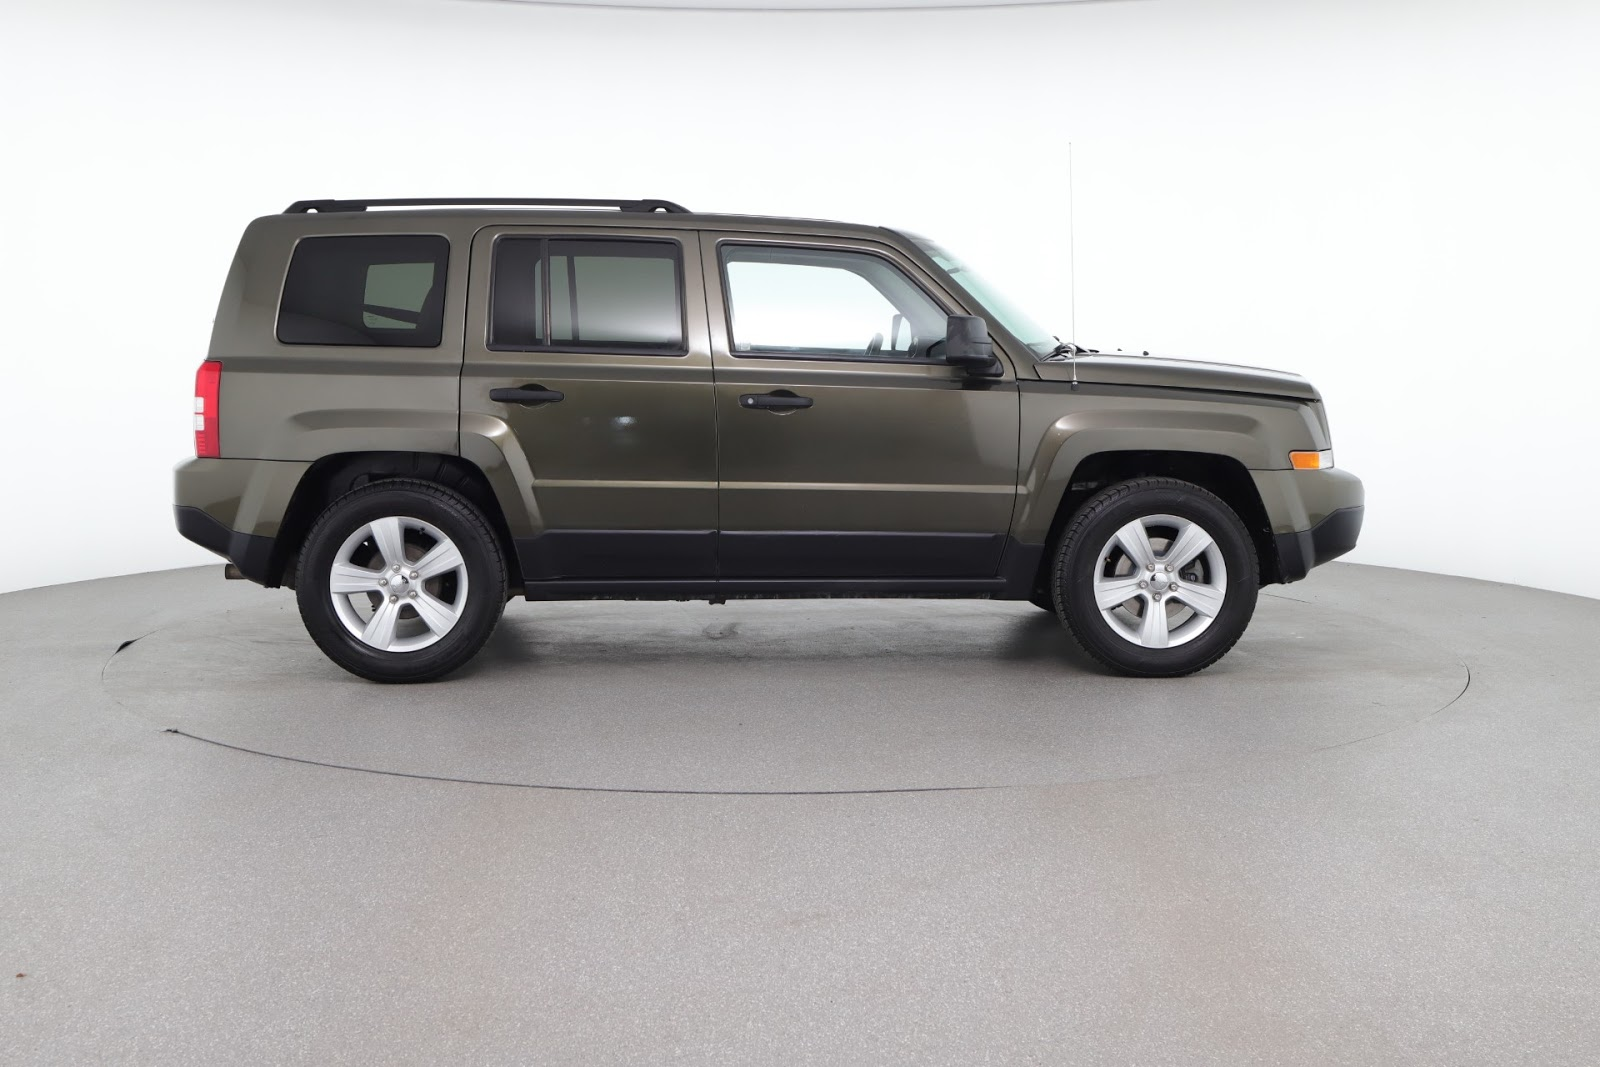 2015 Jeep Patriot Sport (from $11,450)